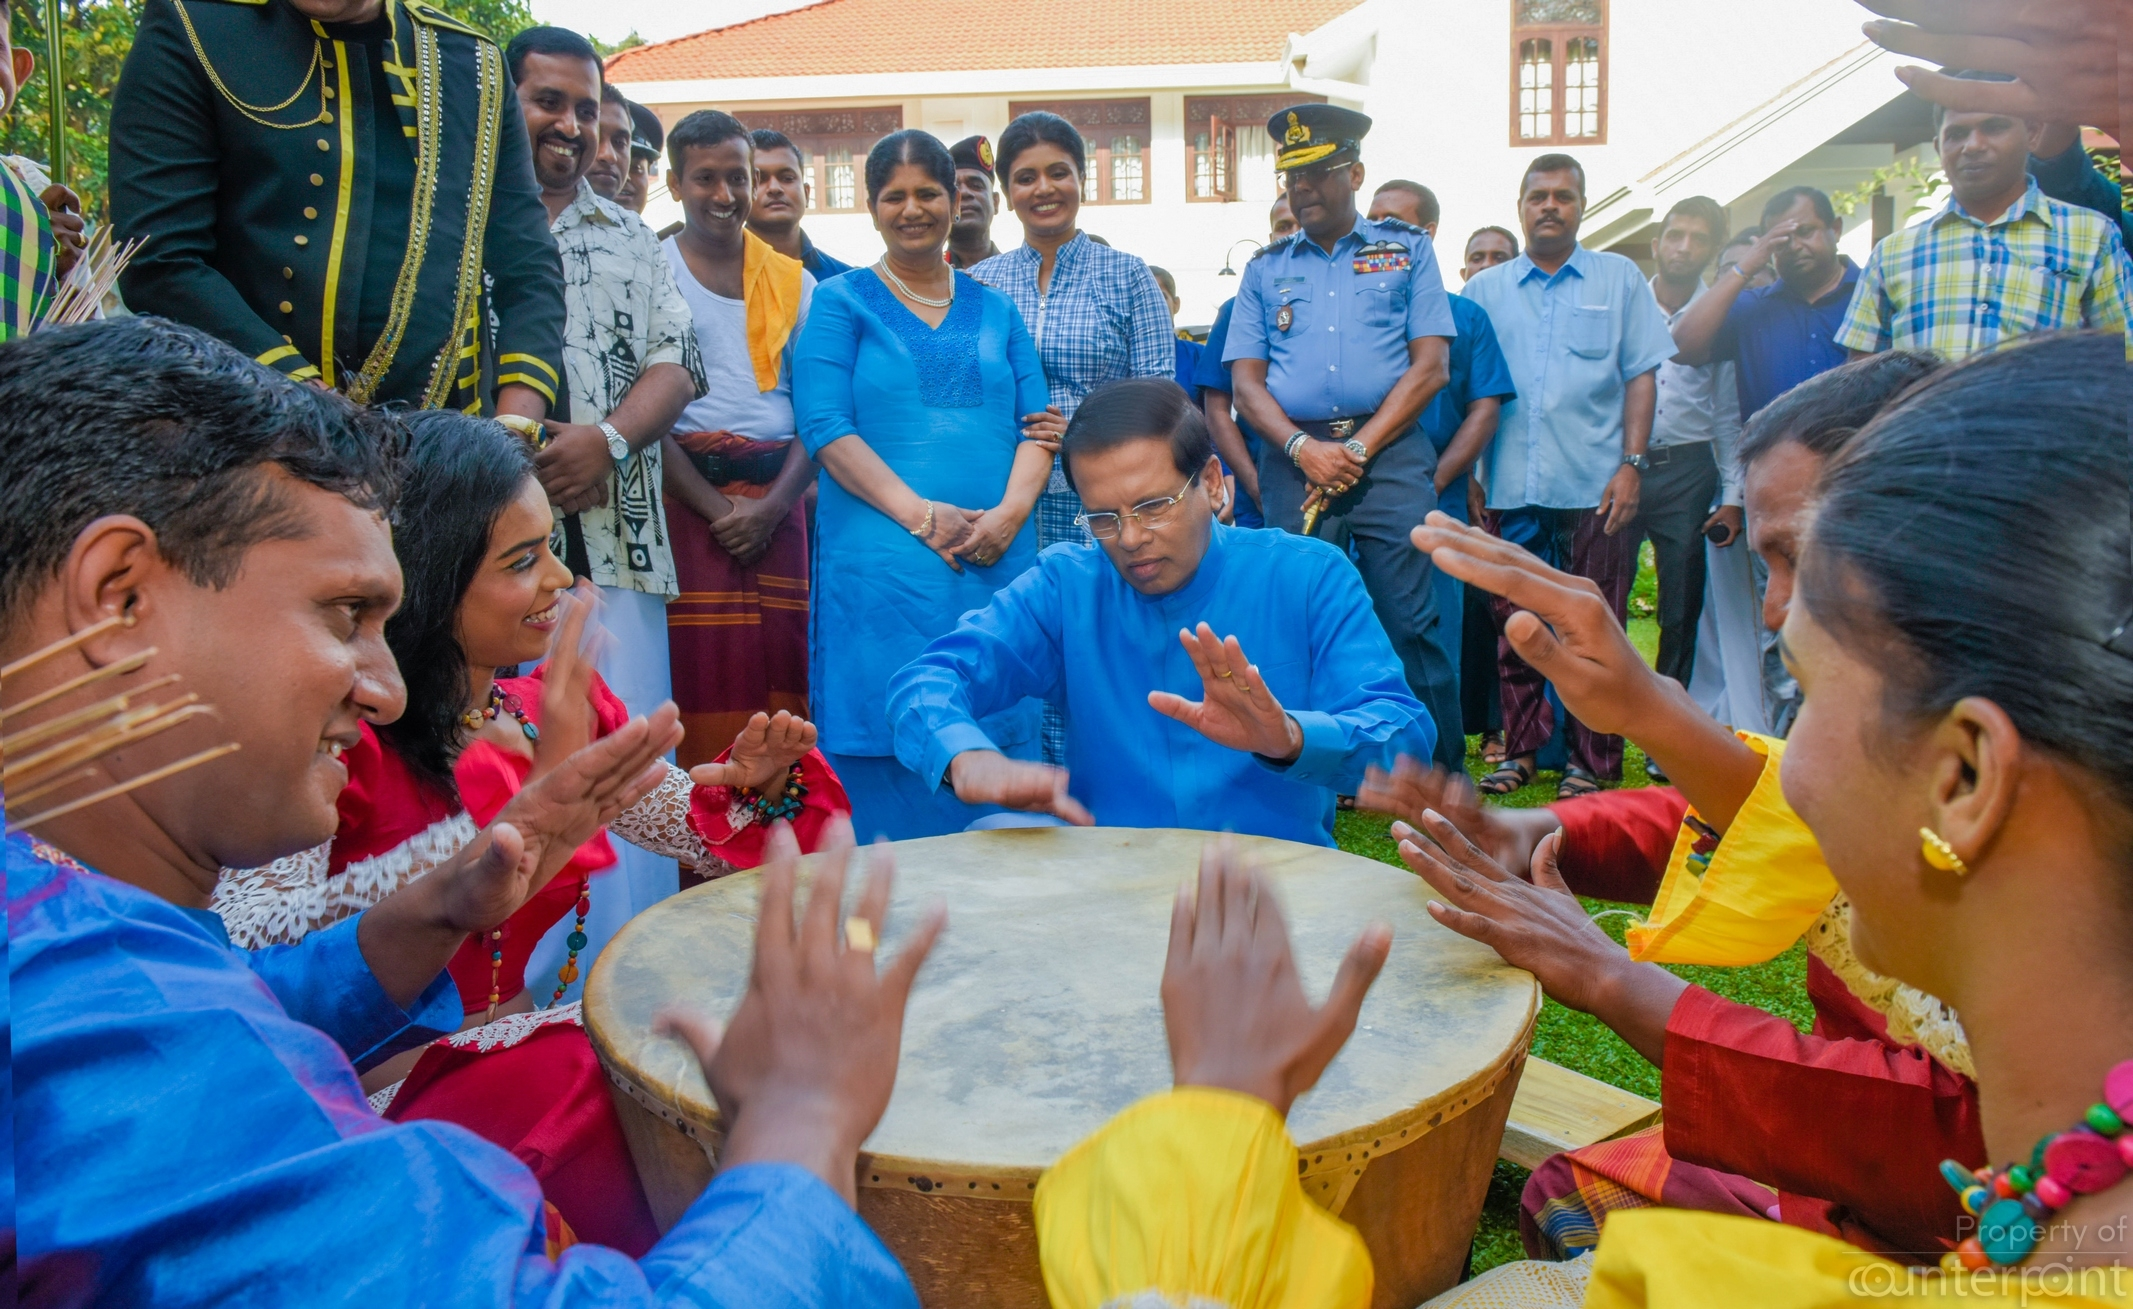 Playing the Rabana at this year's Avurudu festivities: Practicing for retirement?